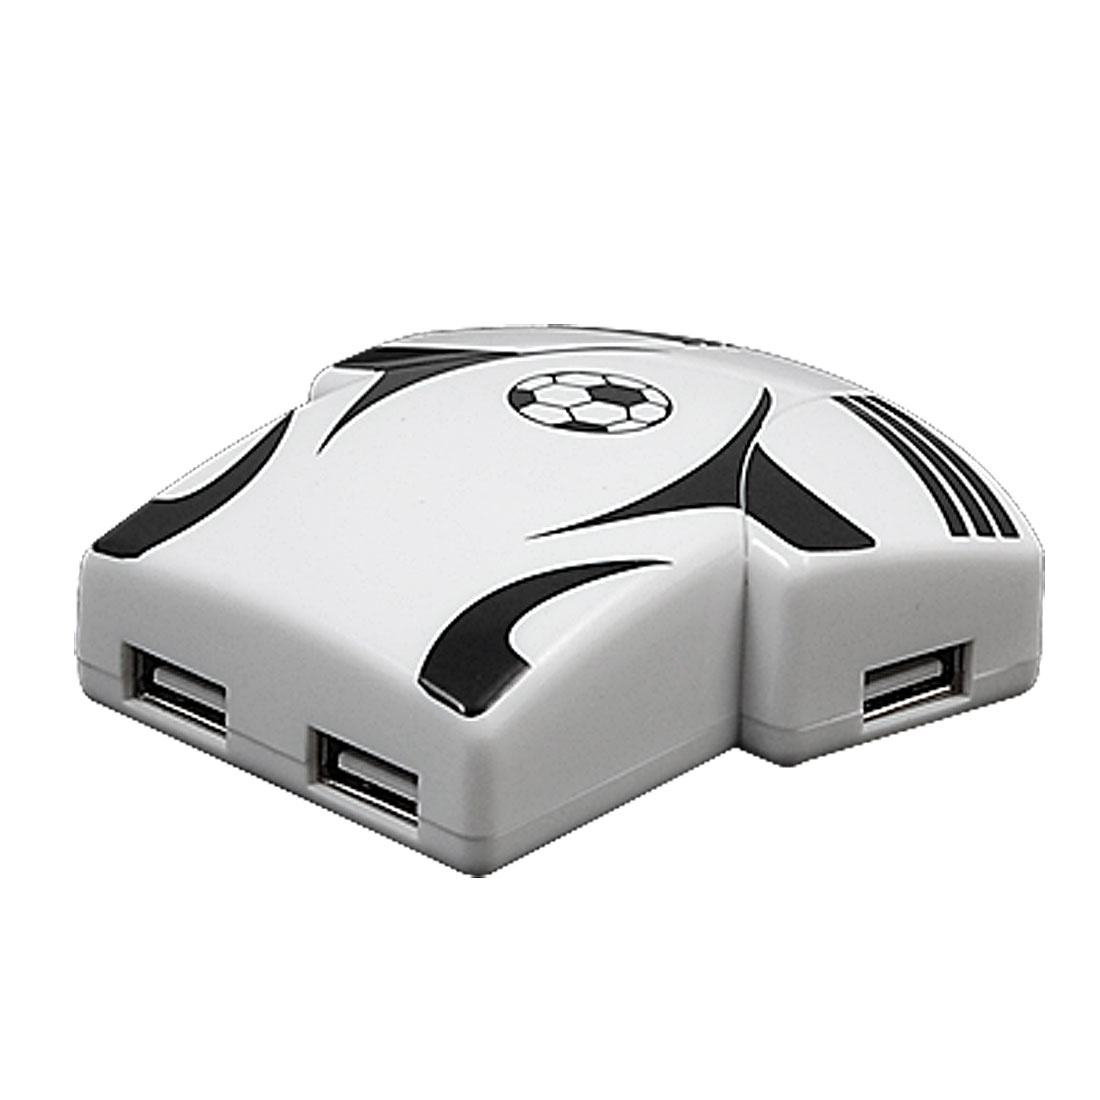 White Football Shirt Design 4 Port USB 2.0 HUB for PC Laptop